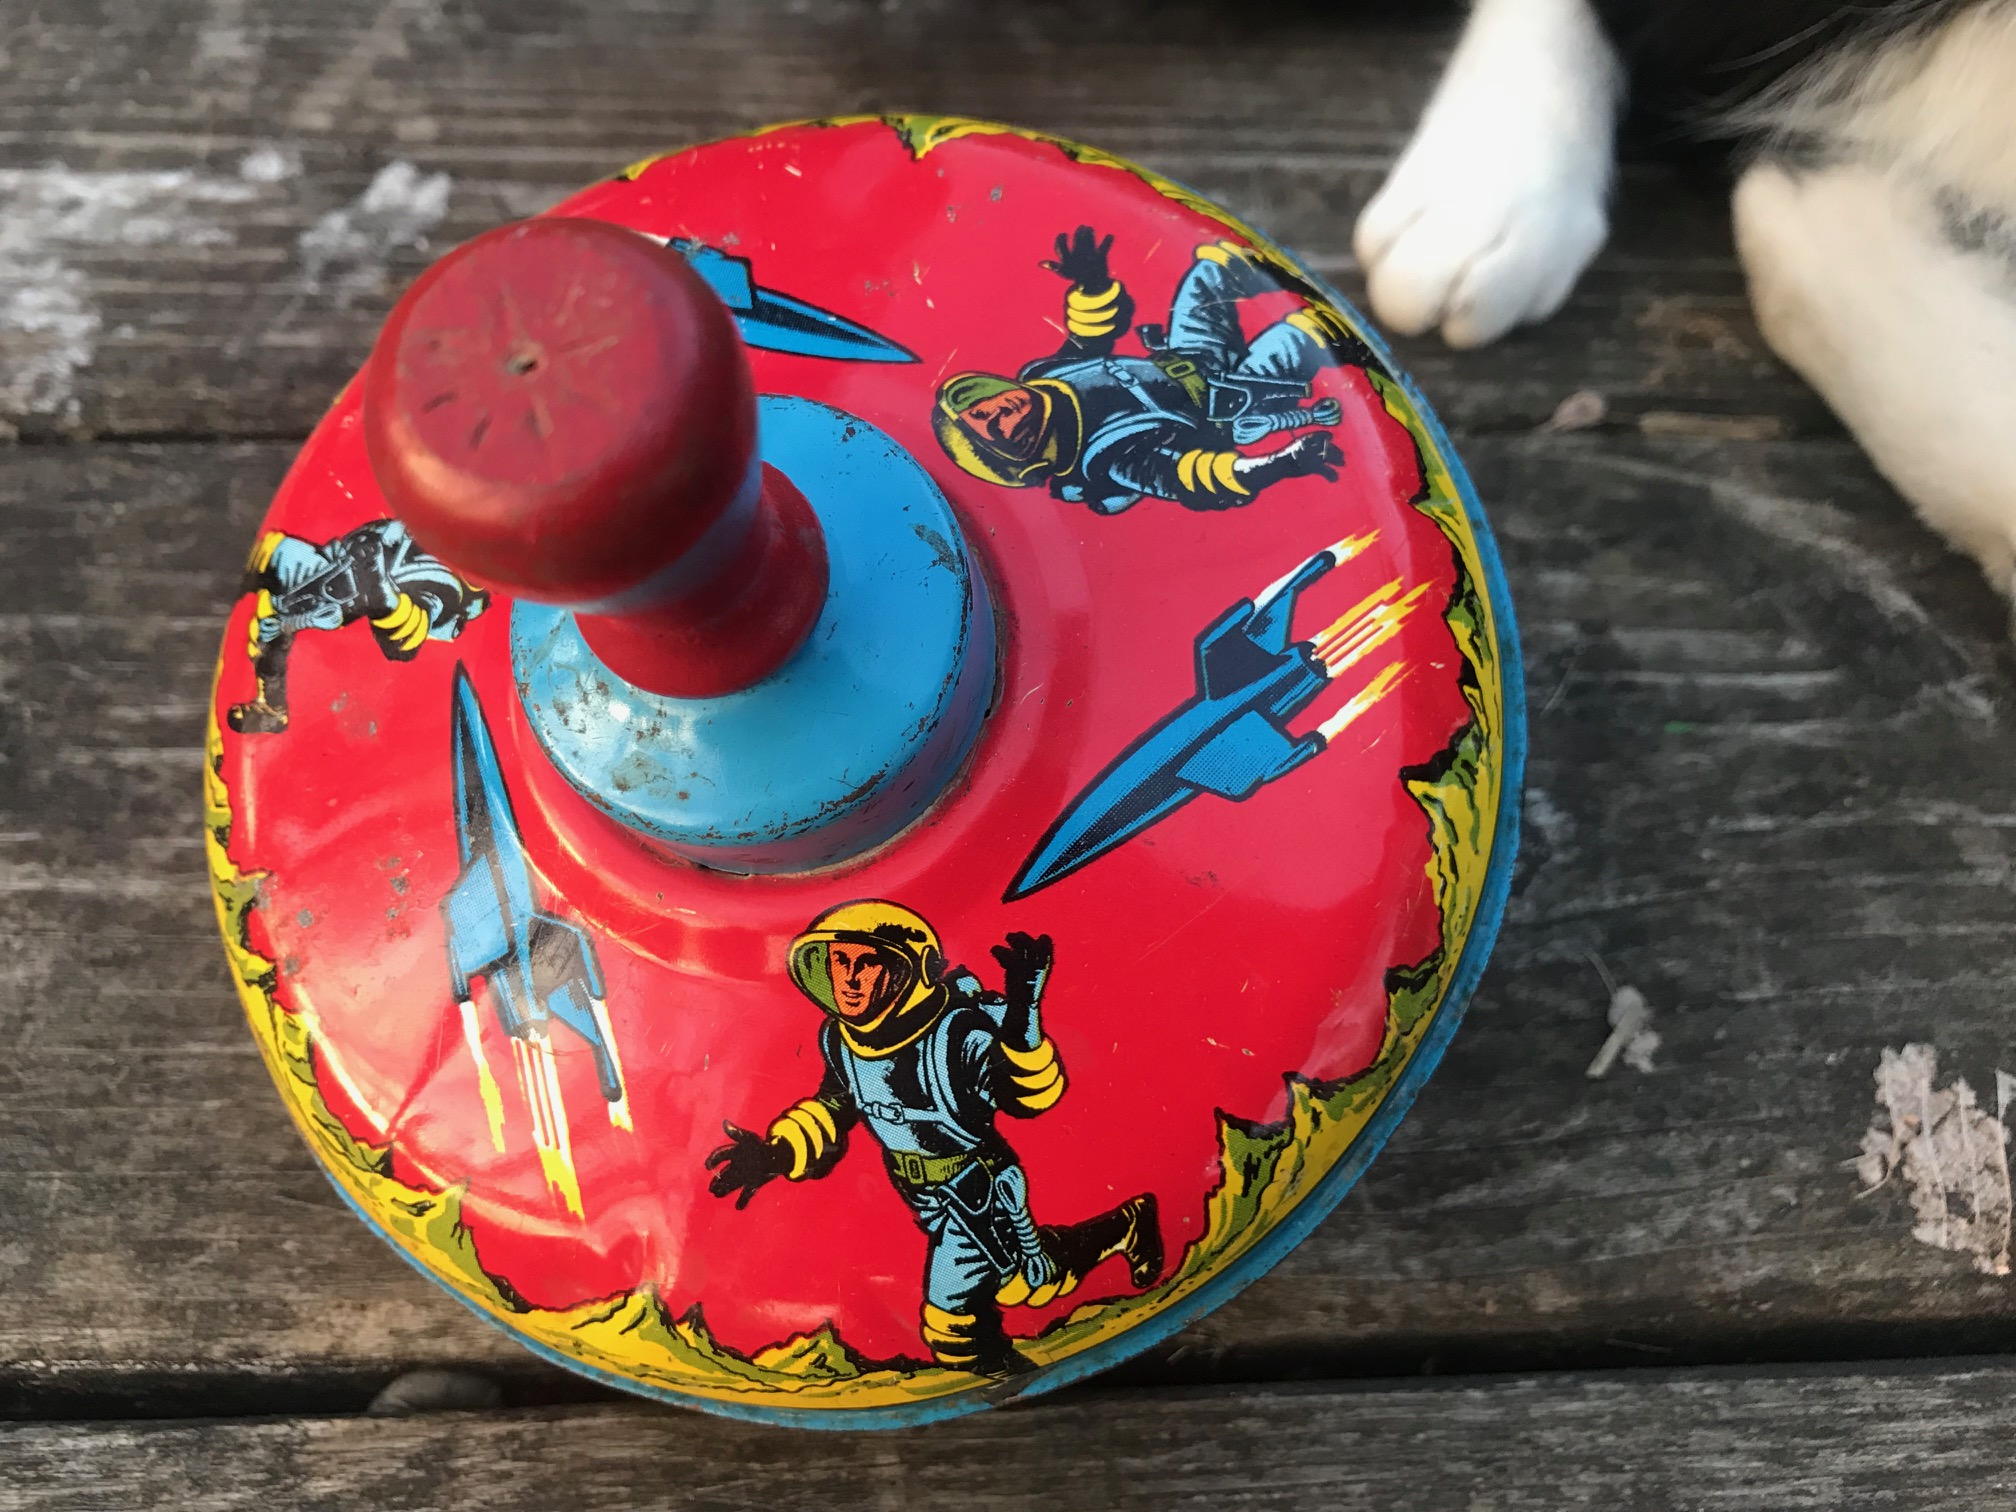 Vintage (1950s?) Tin Spinning Top Toy With Rockets & Spacemen: 19,300 ppm Lead